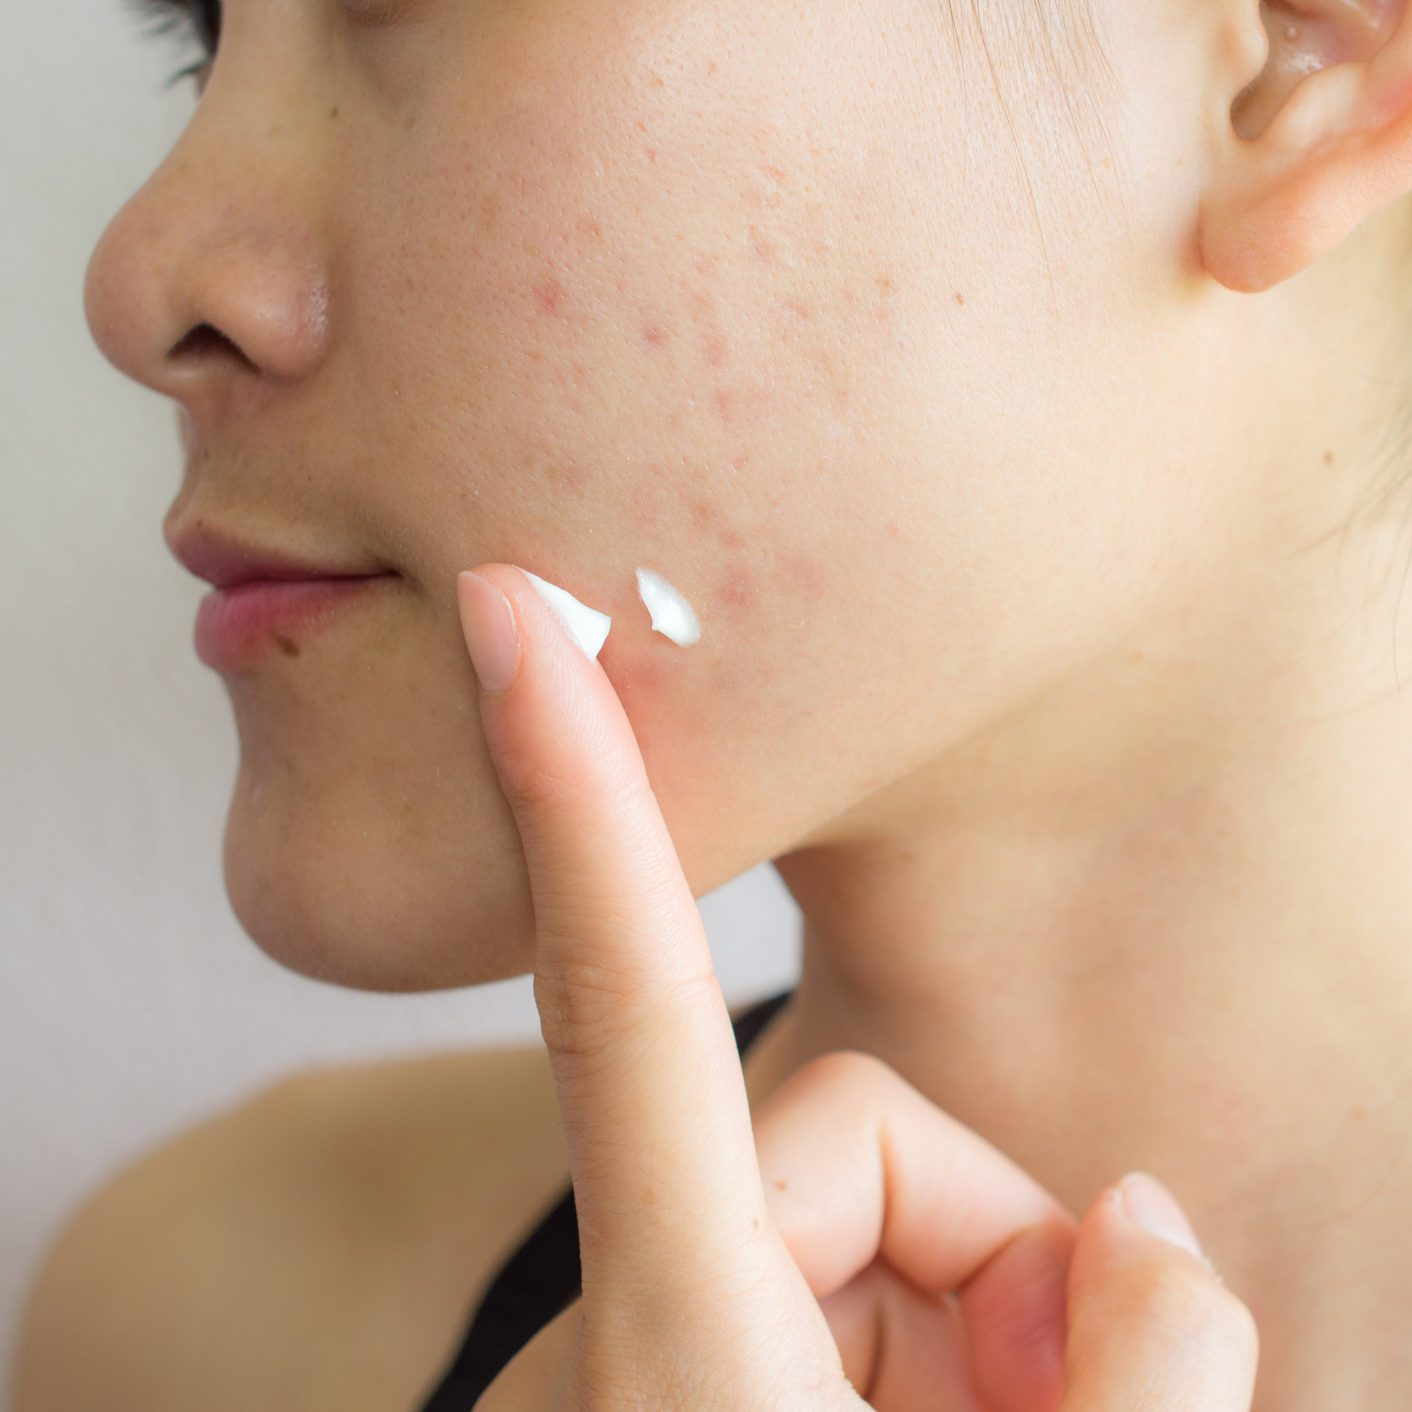 The Best Moisturizers for People With Acne